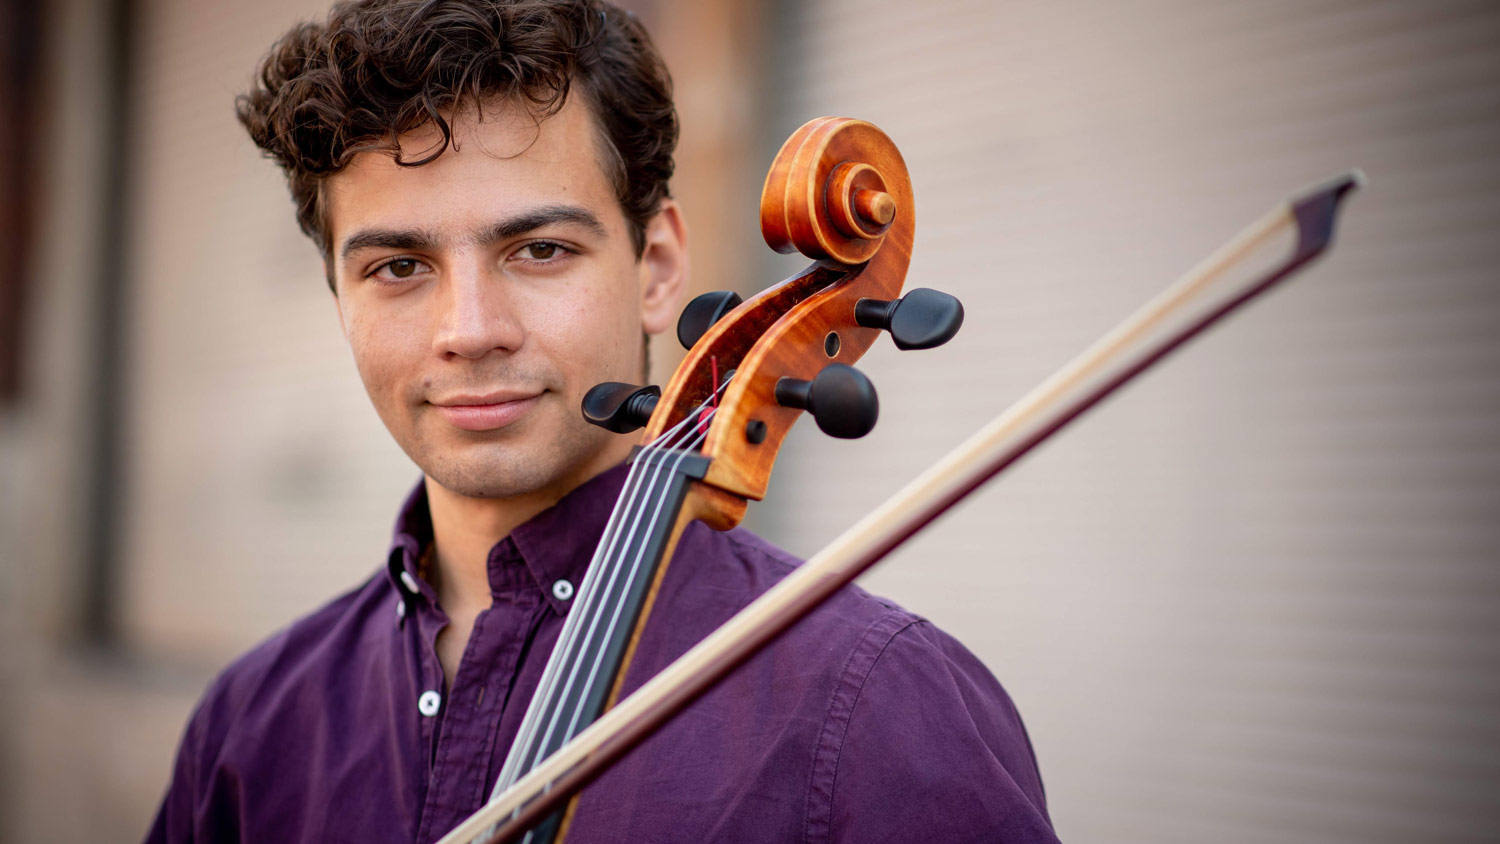 The Los Angeles Orchestra Fellowship | USC Thornton School of Music